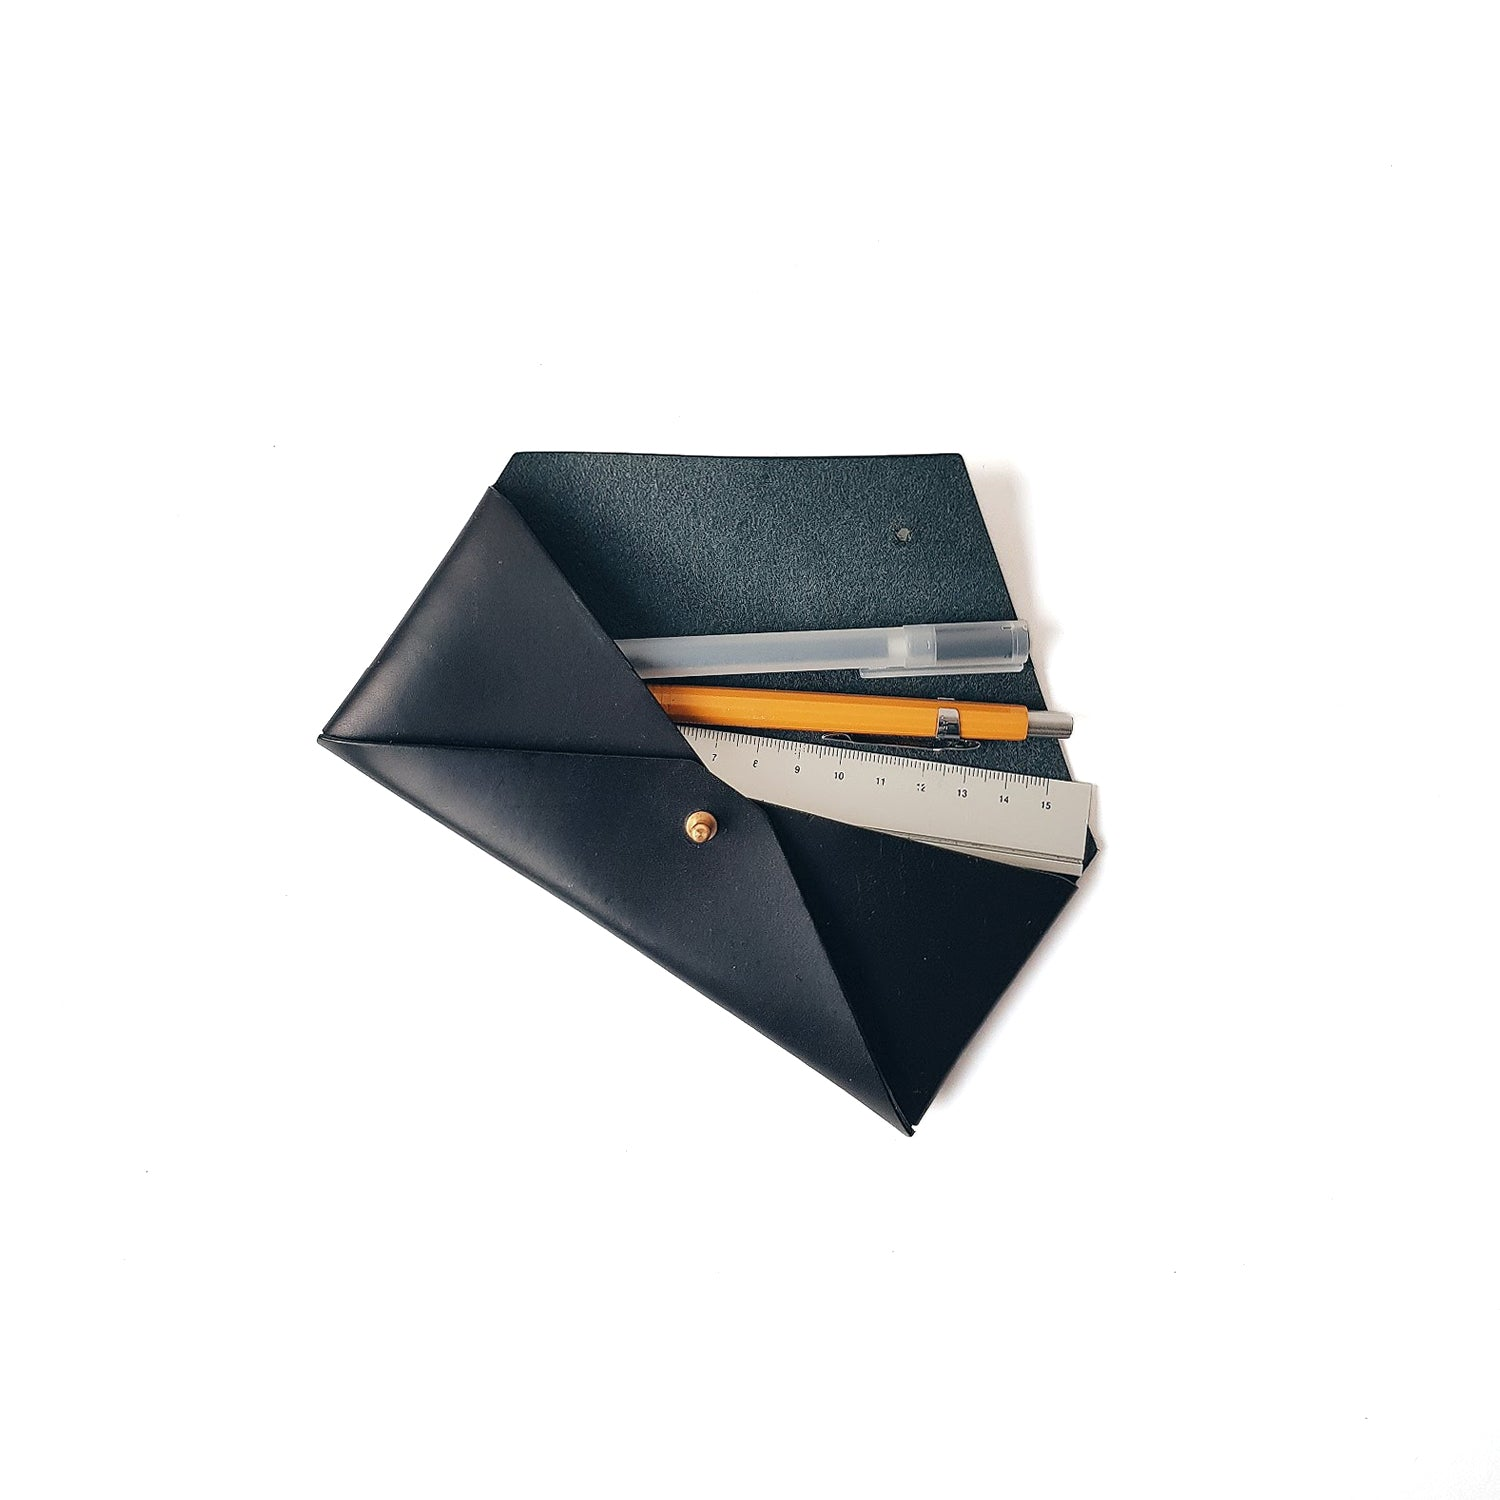 Long Envelope in Black